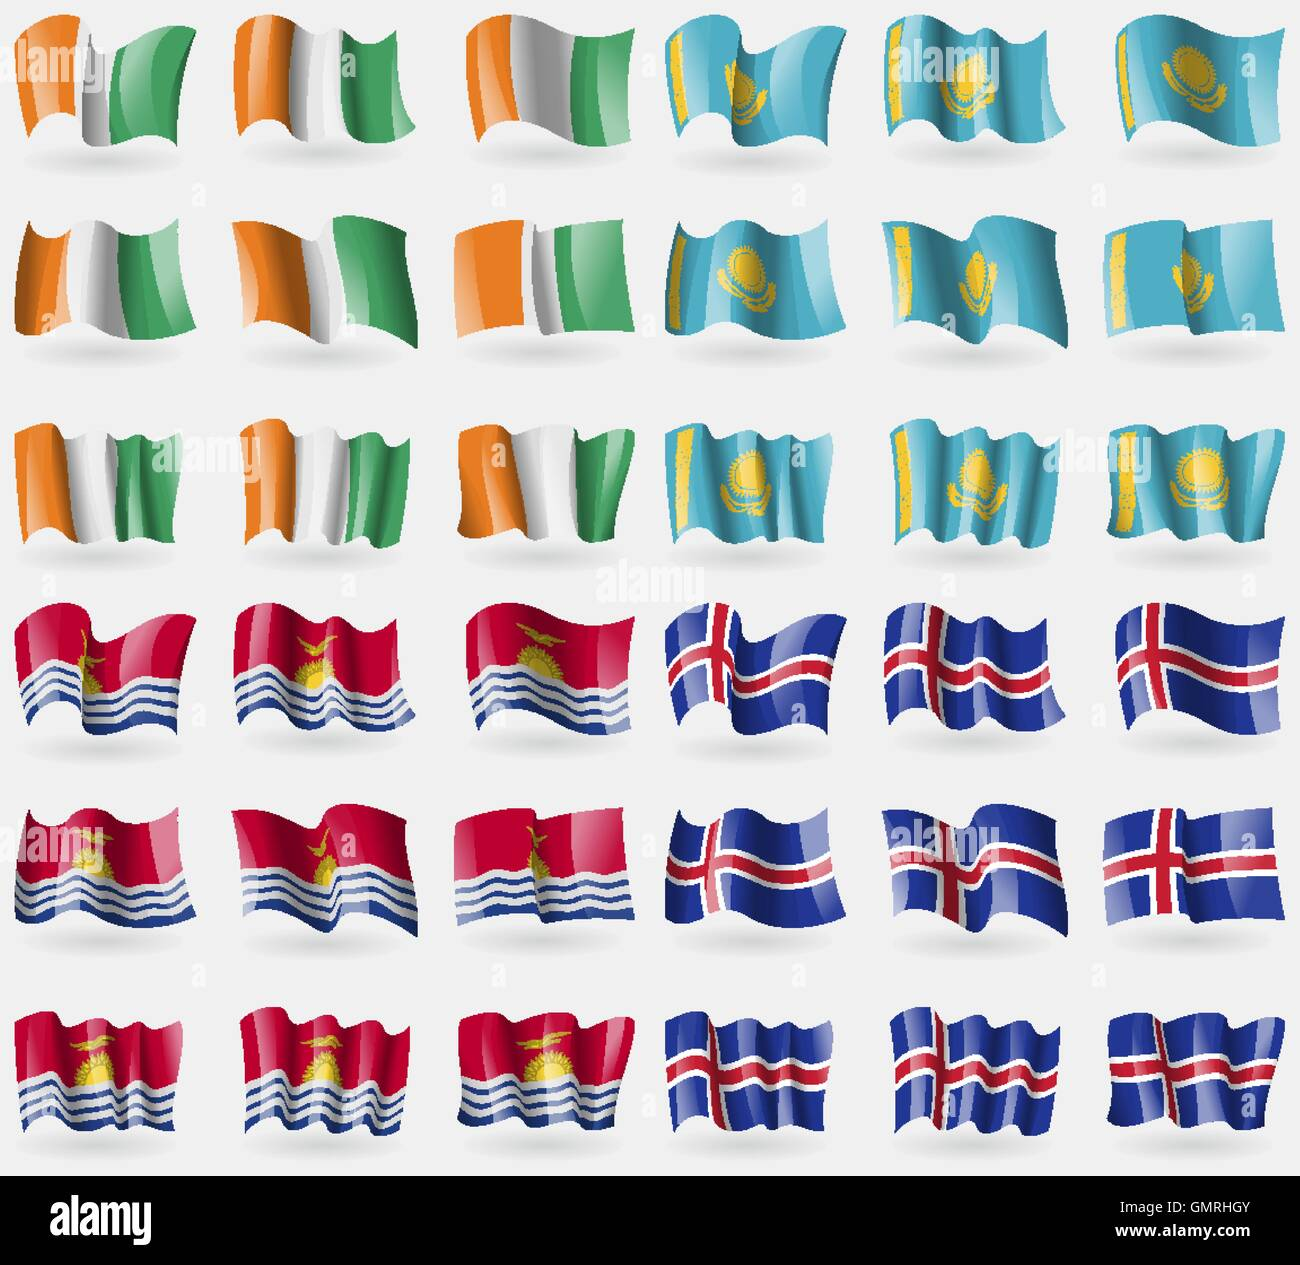 Cote Divoire, Kazakhstan, Kiribati, Iceland. Set of 36 flags of the countries of the world. Vector - Stock Image